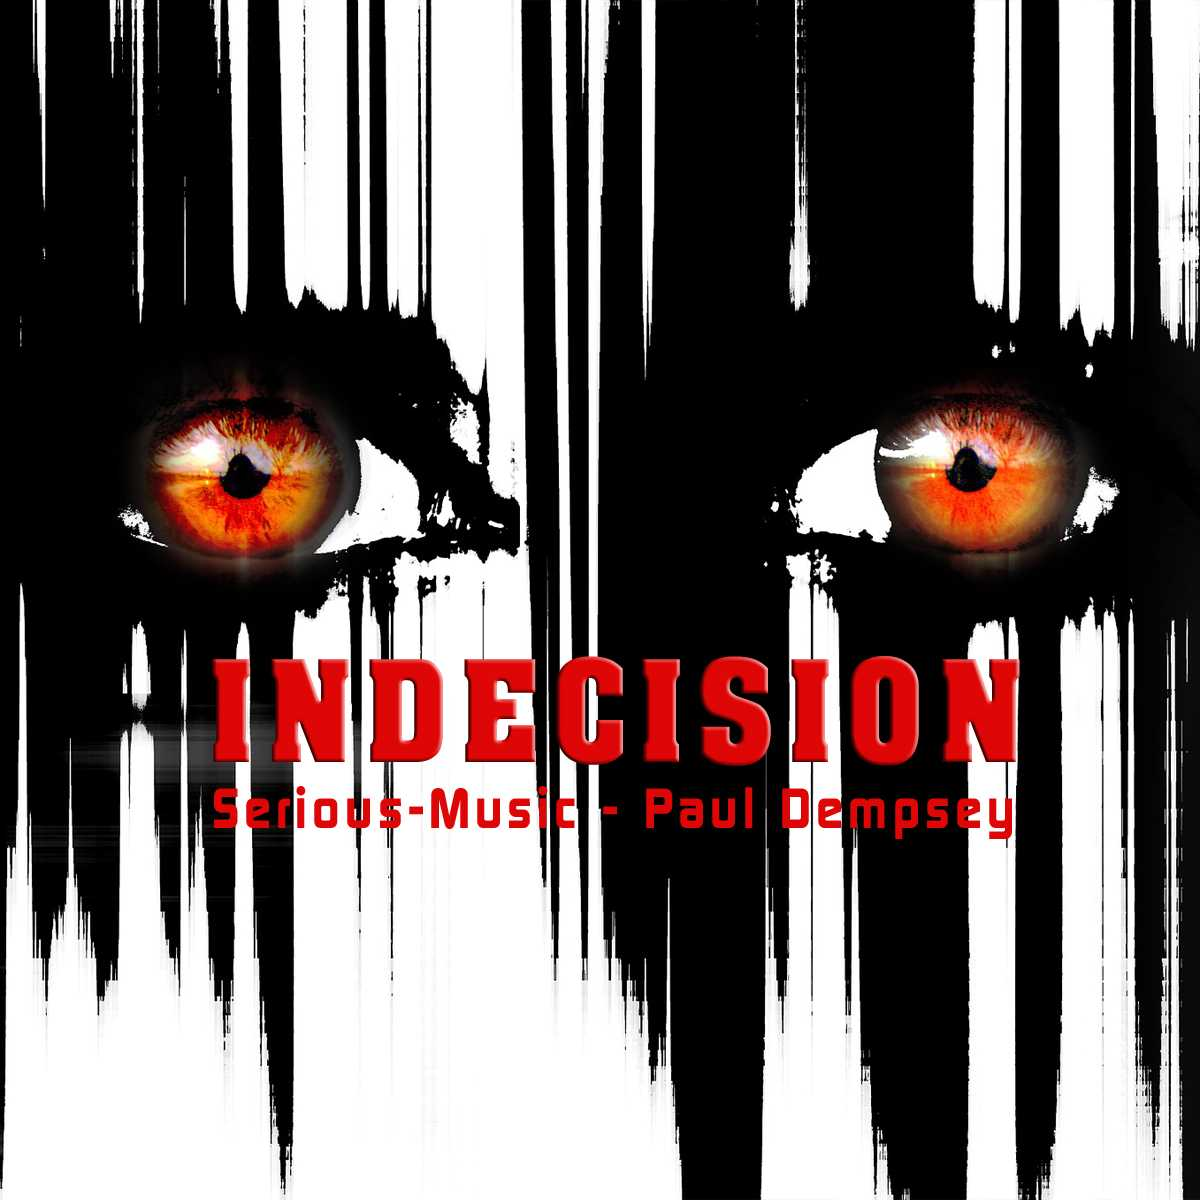 Indecision feat. Paul Dempsey - Album A Life Untold